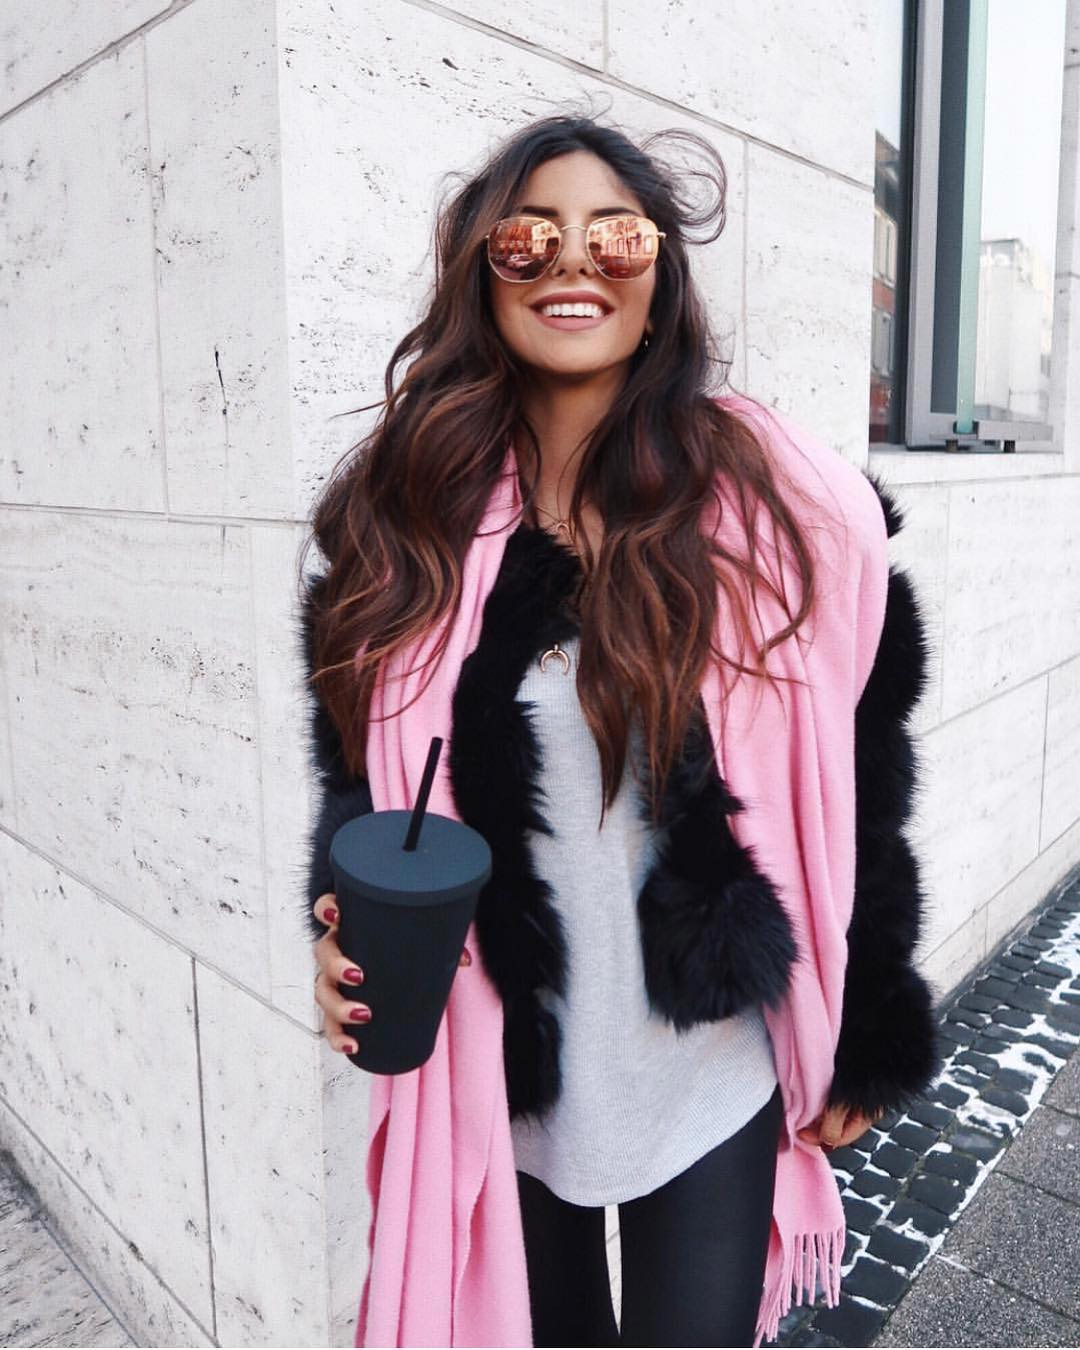 Black Fur Jacket With Pink Scarf And Mirrored Rounded Sunglasses 2019